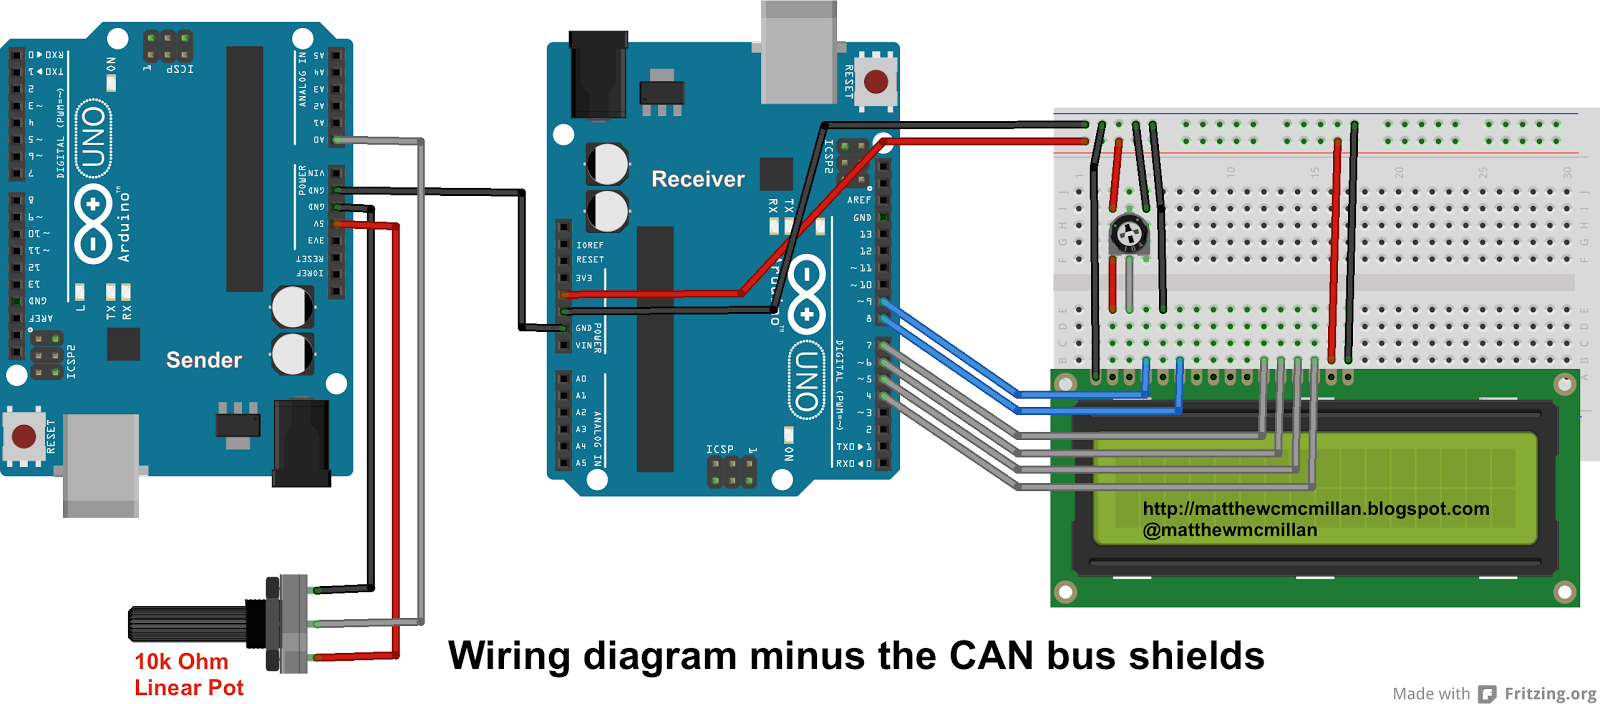 Matthew McMillan: Arduino  Sending data over a CAN bus